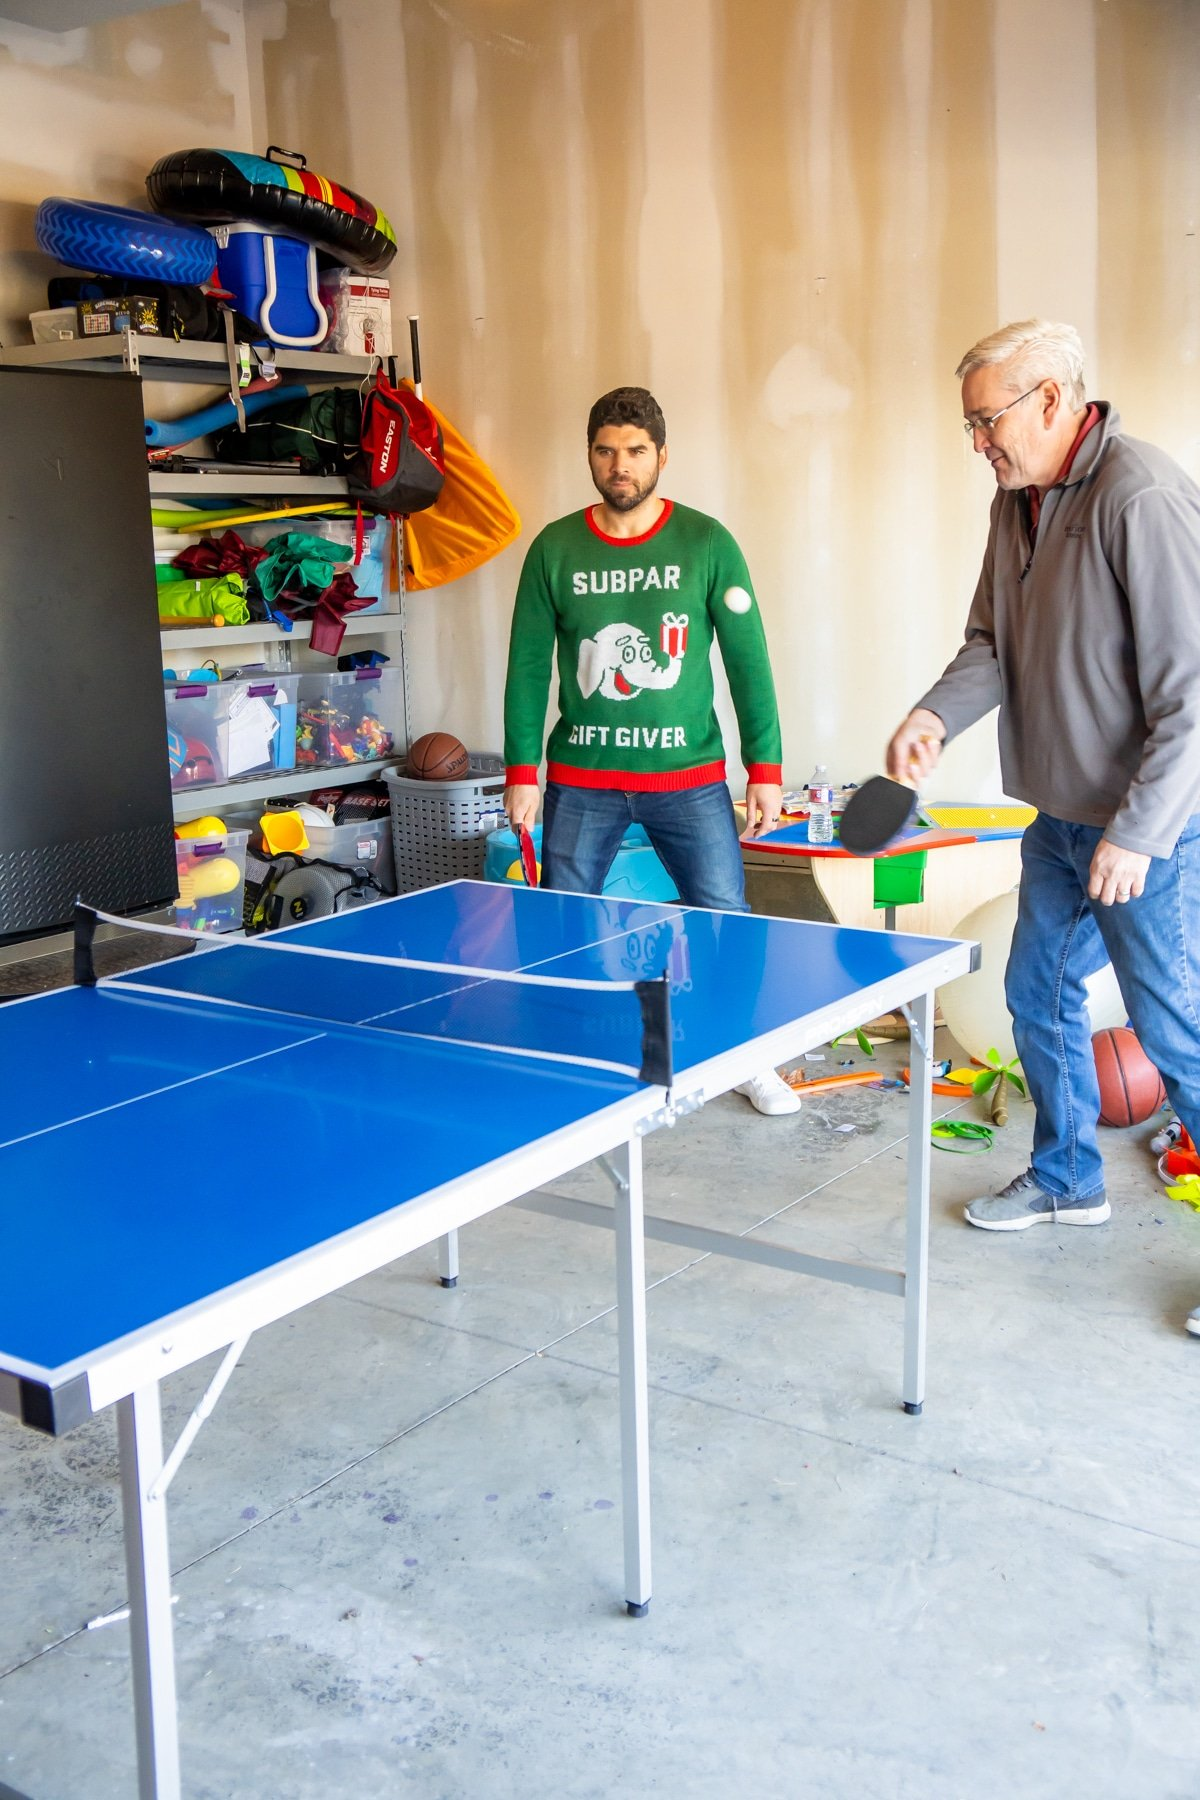 Partners playing ping pong games in a garage